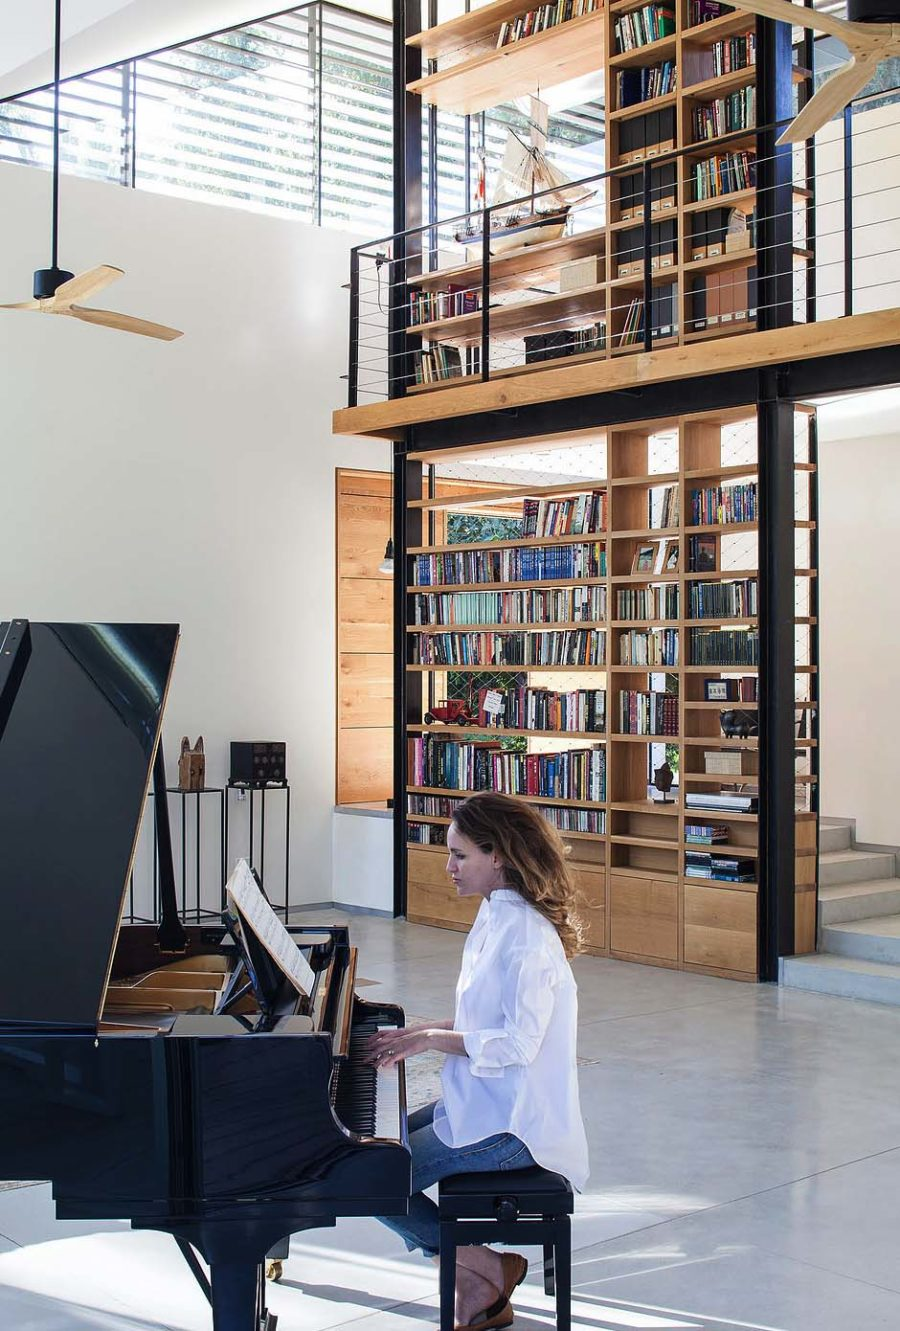 Living Room Library Design Ideas: Modern Home Library Ideas For Bookworms And Butterflies